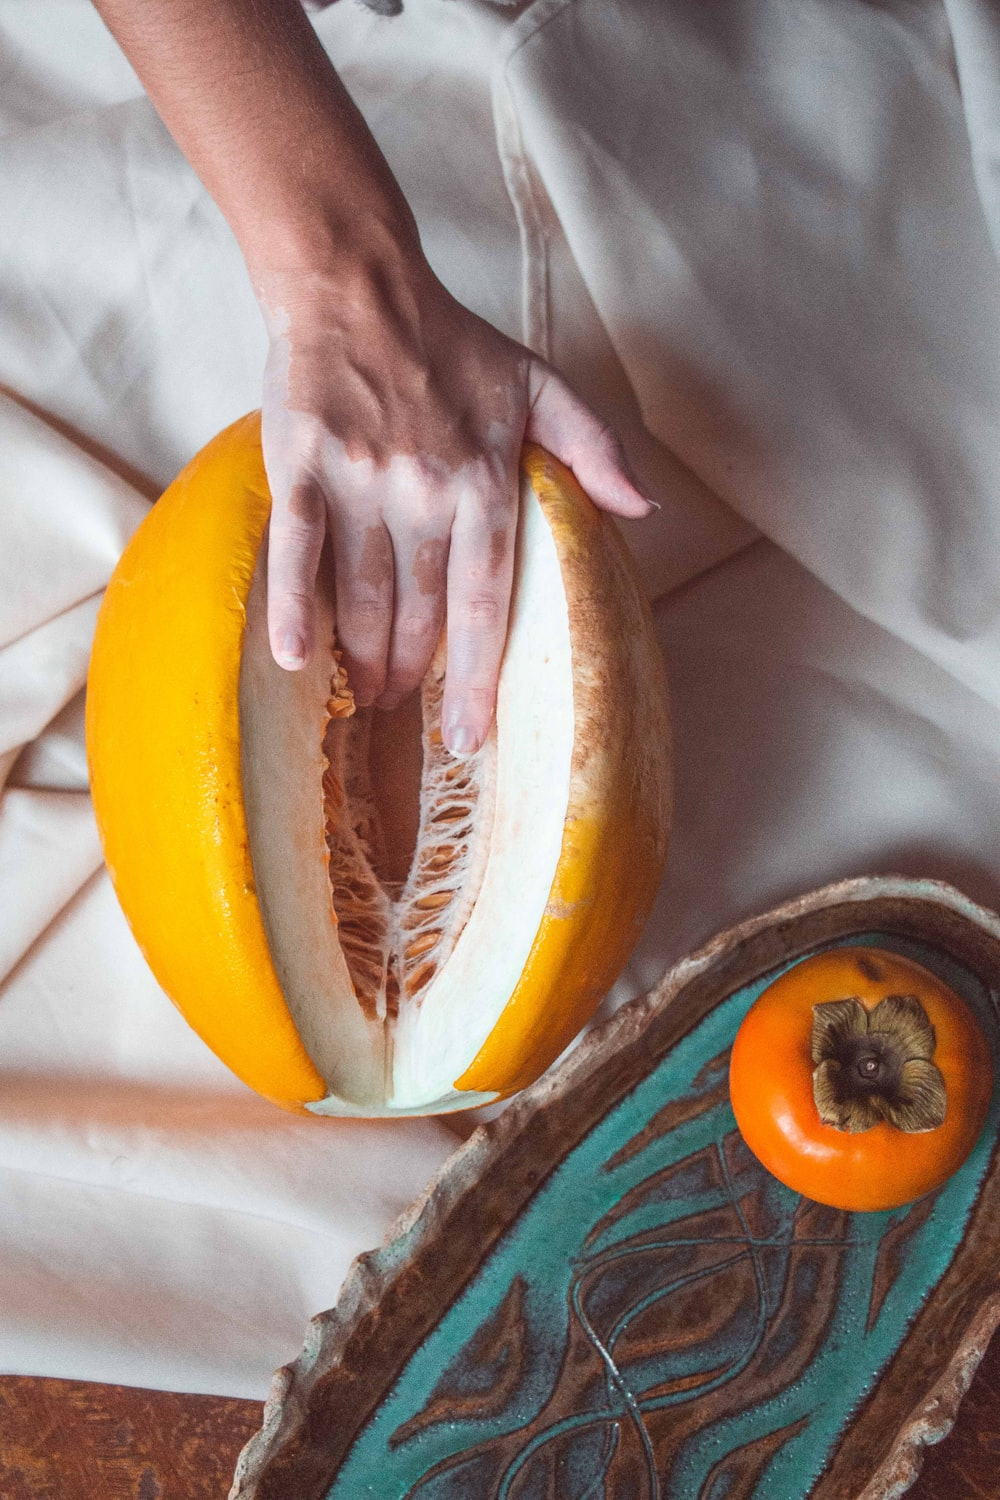 person holding sliced of yellow and brown fruit